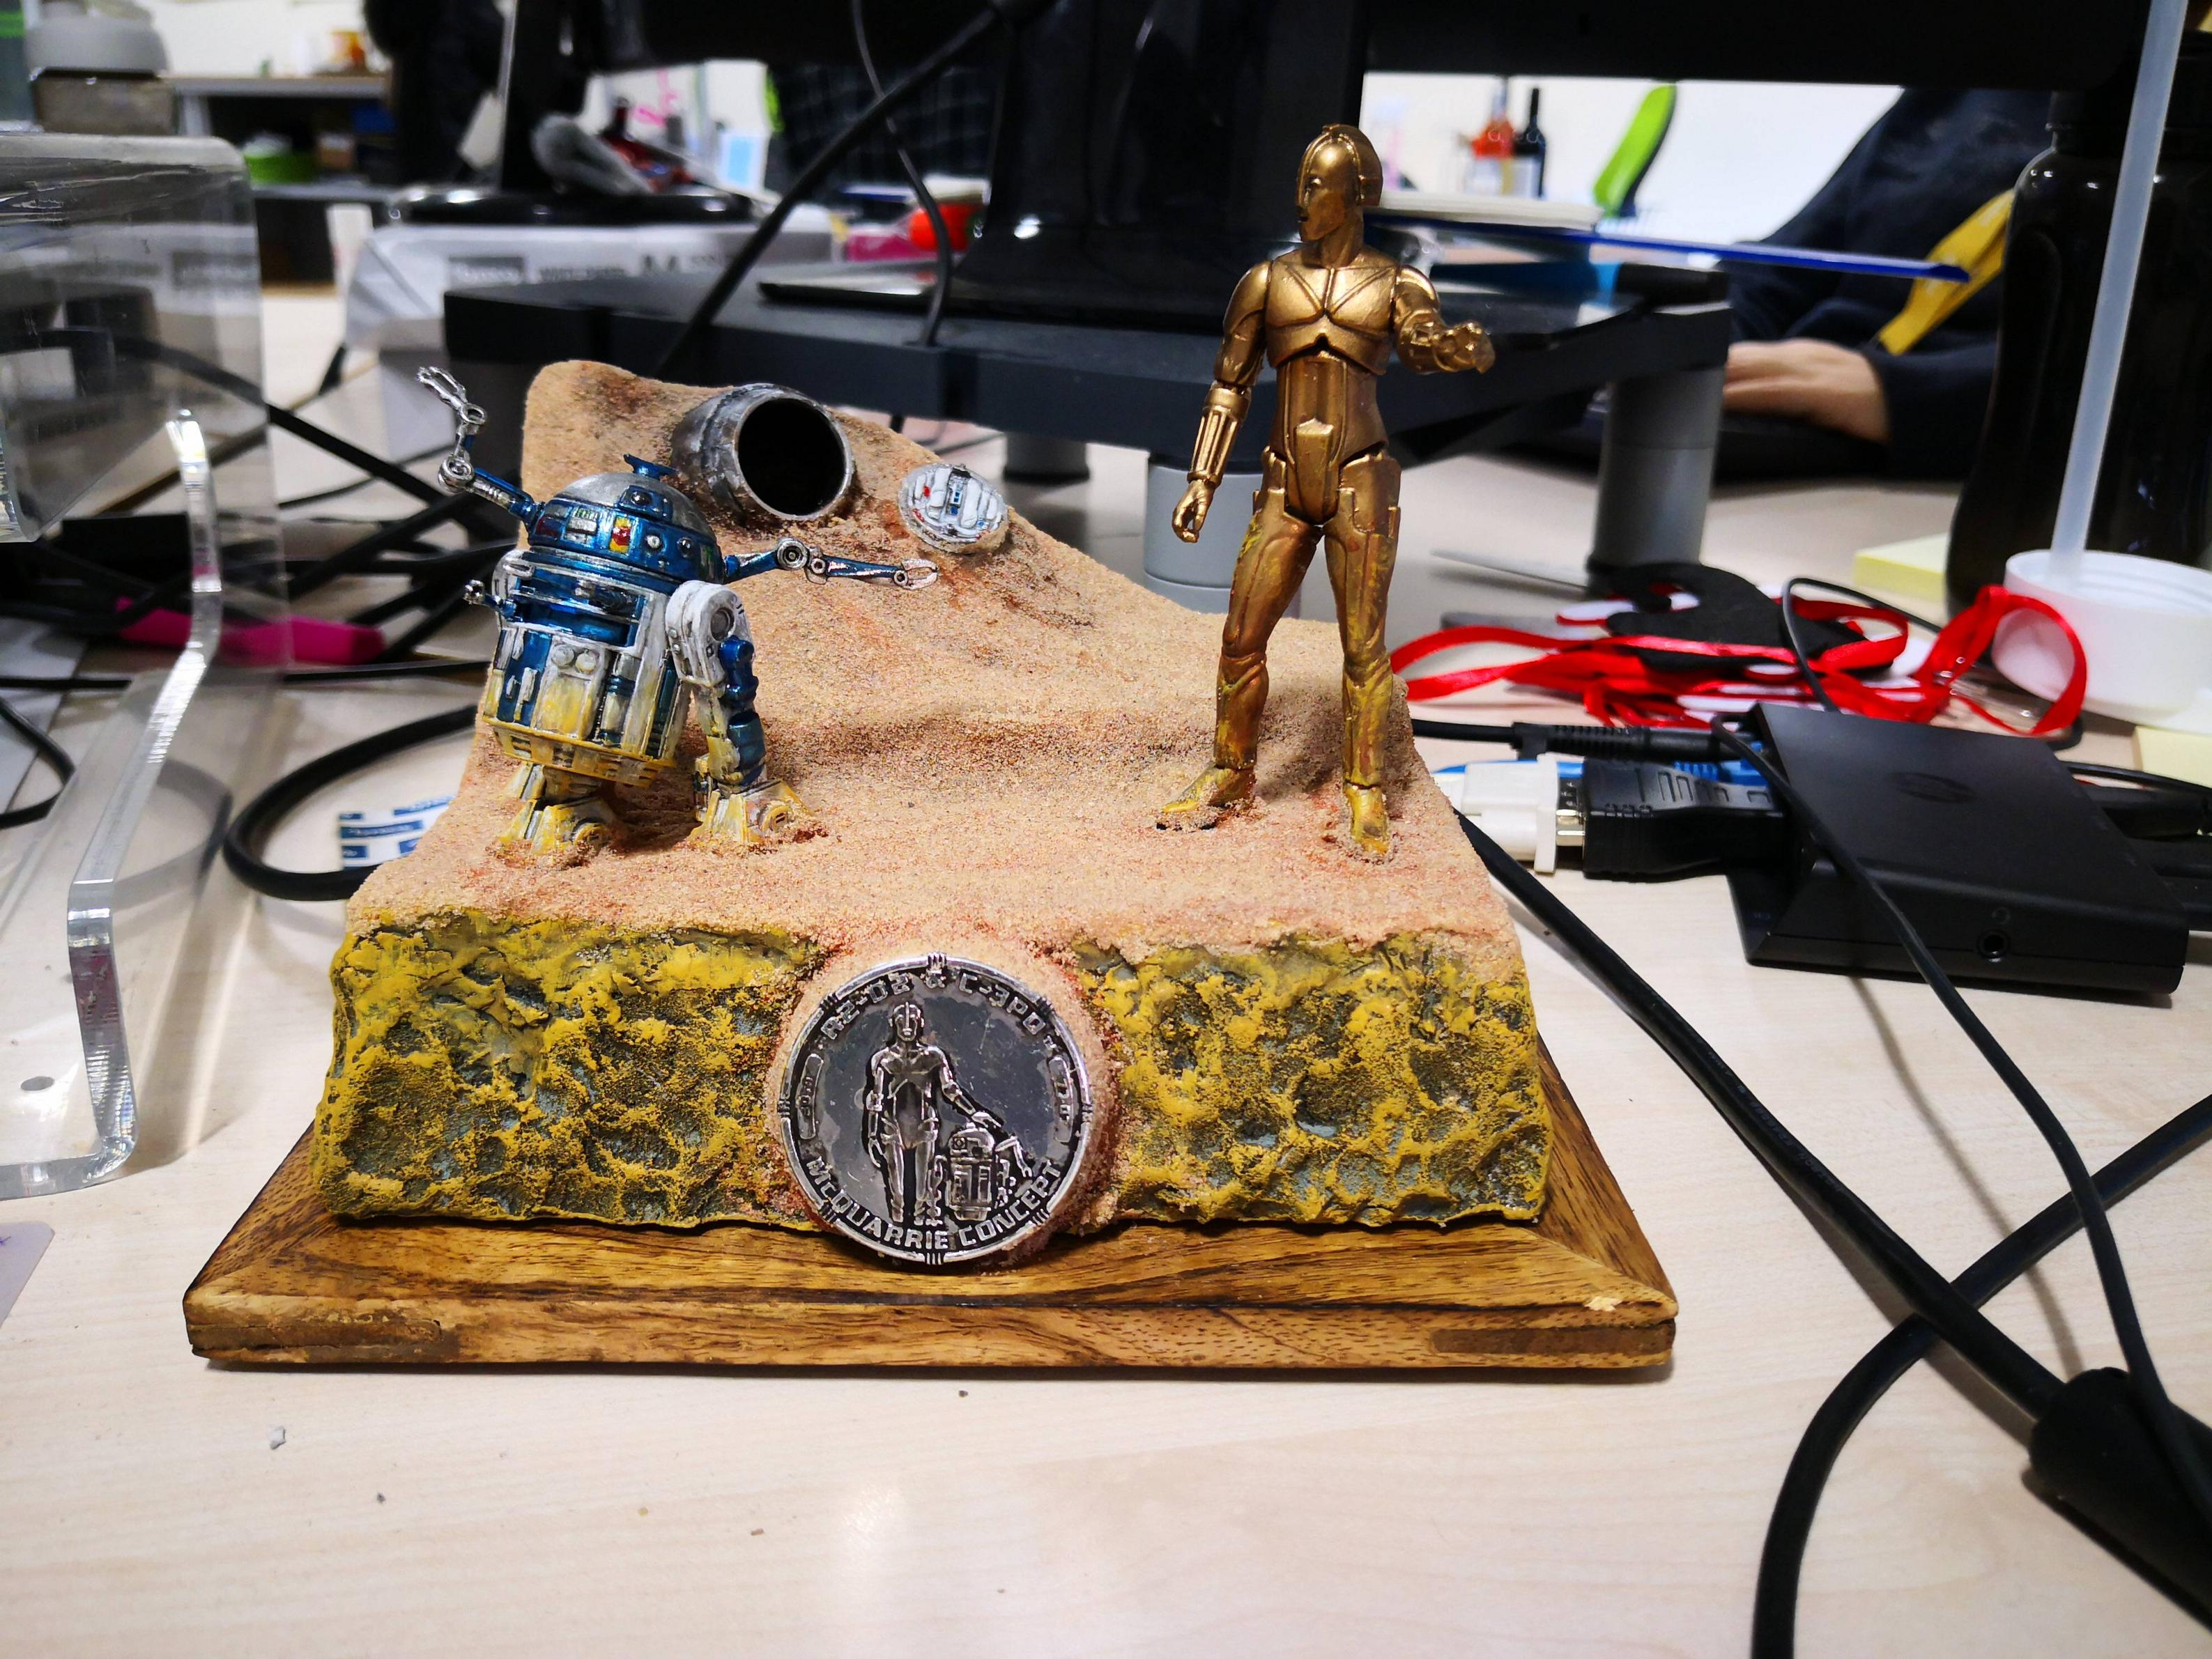 Friend made me this diorama!